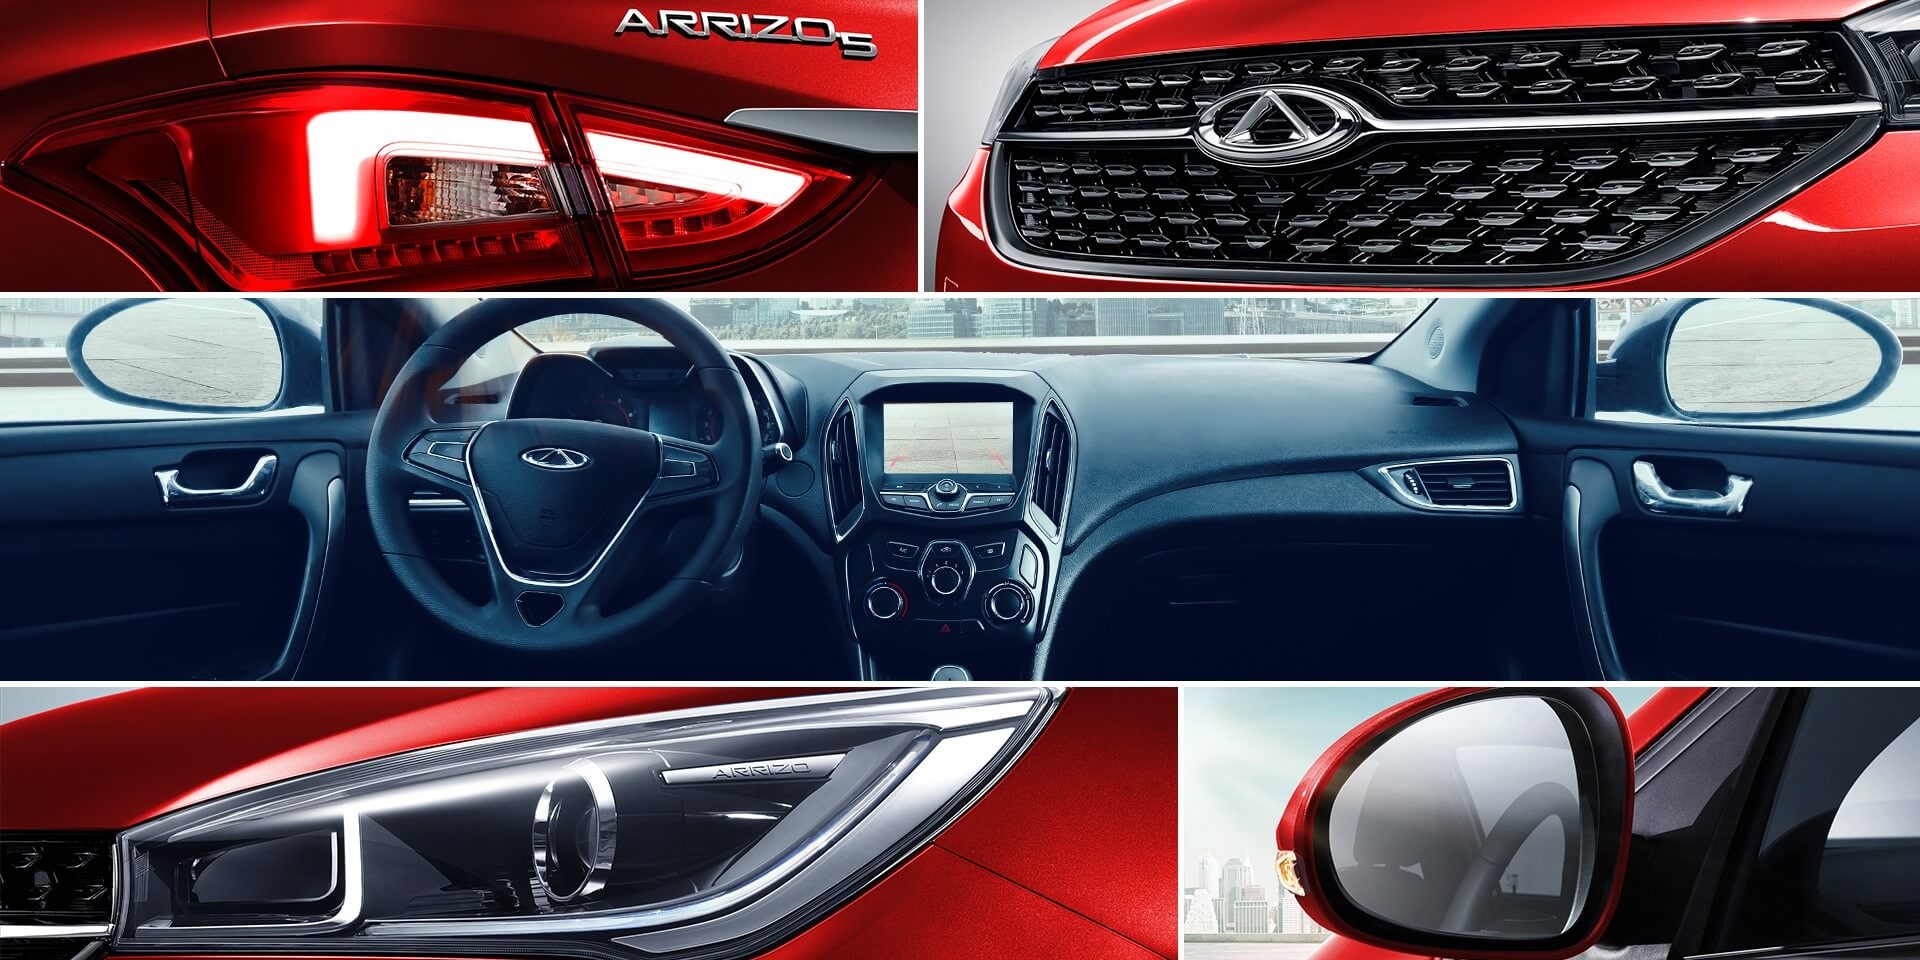 Chery Arrizo 5 Red color interior and exterior